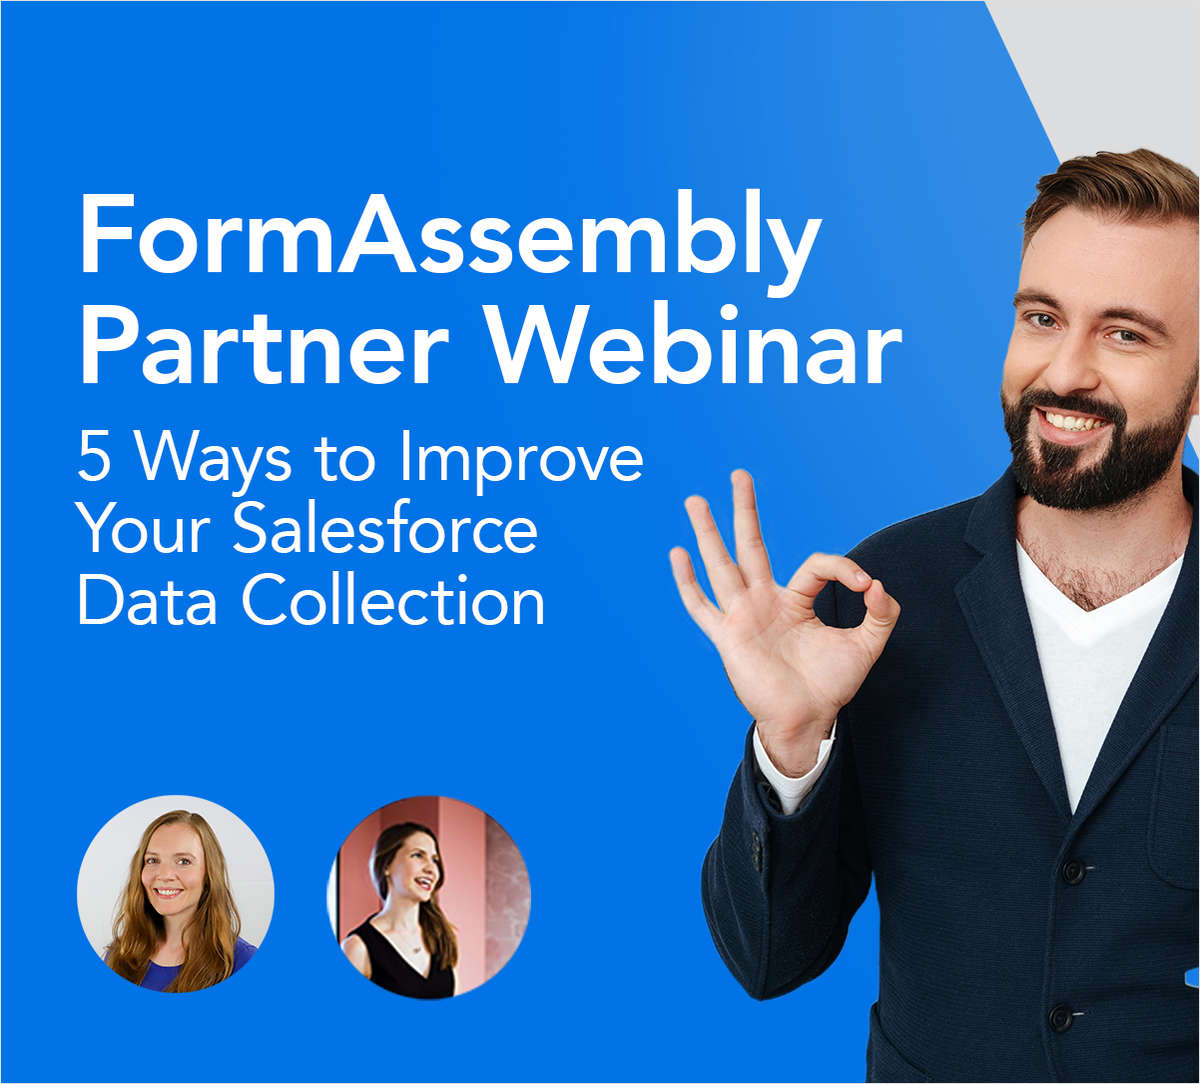 [Webinar] 5 Ways to Improve Your Salesforce Data Collection